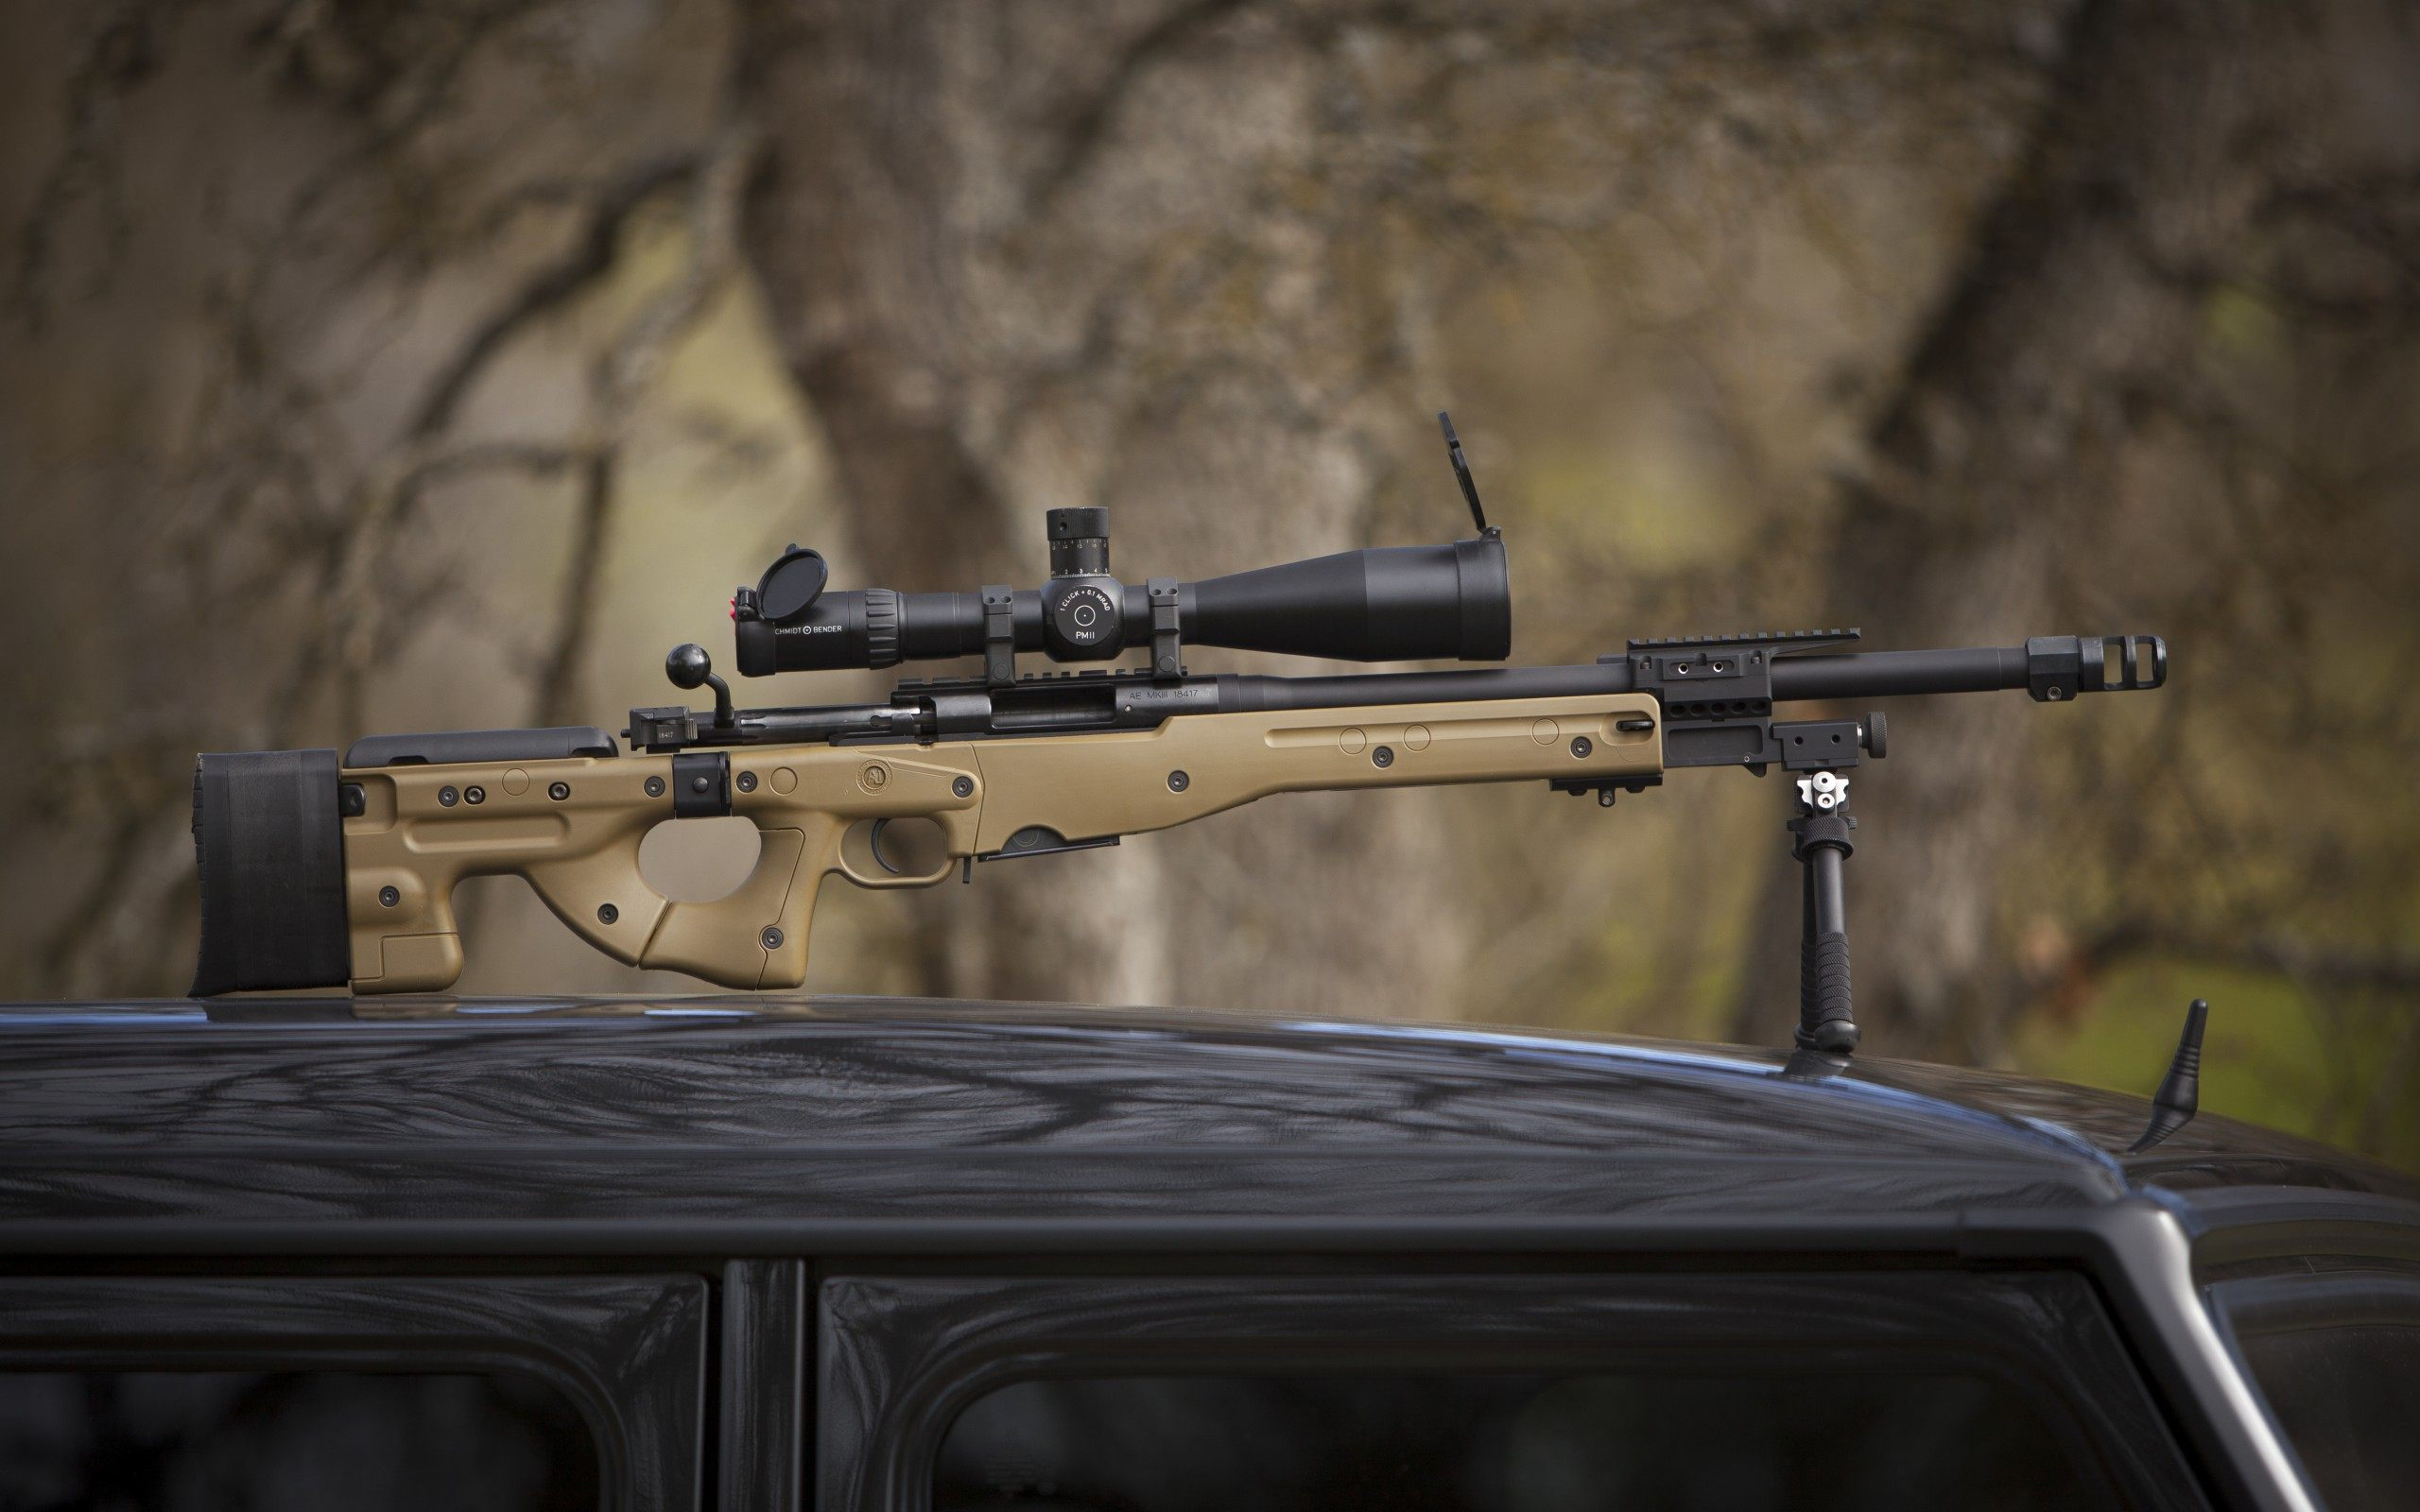 Free Download Sniper Rifle Wallpapers And Background Images